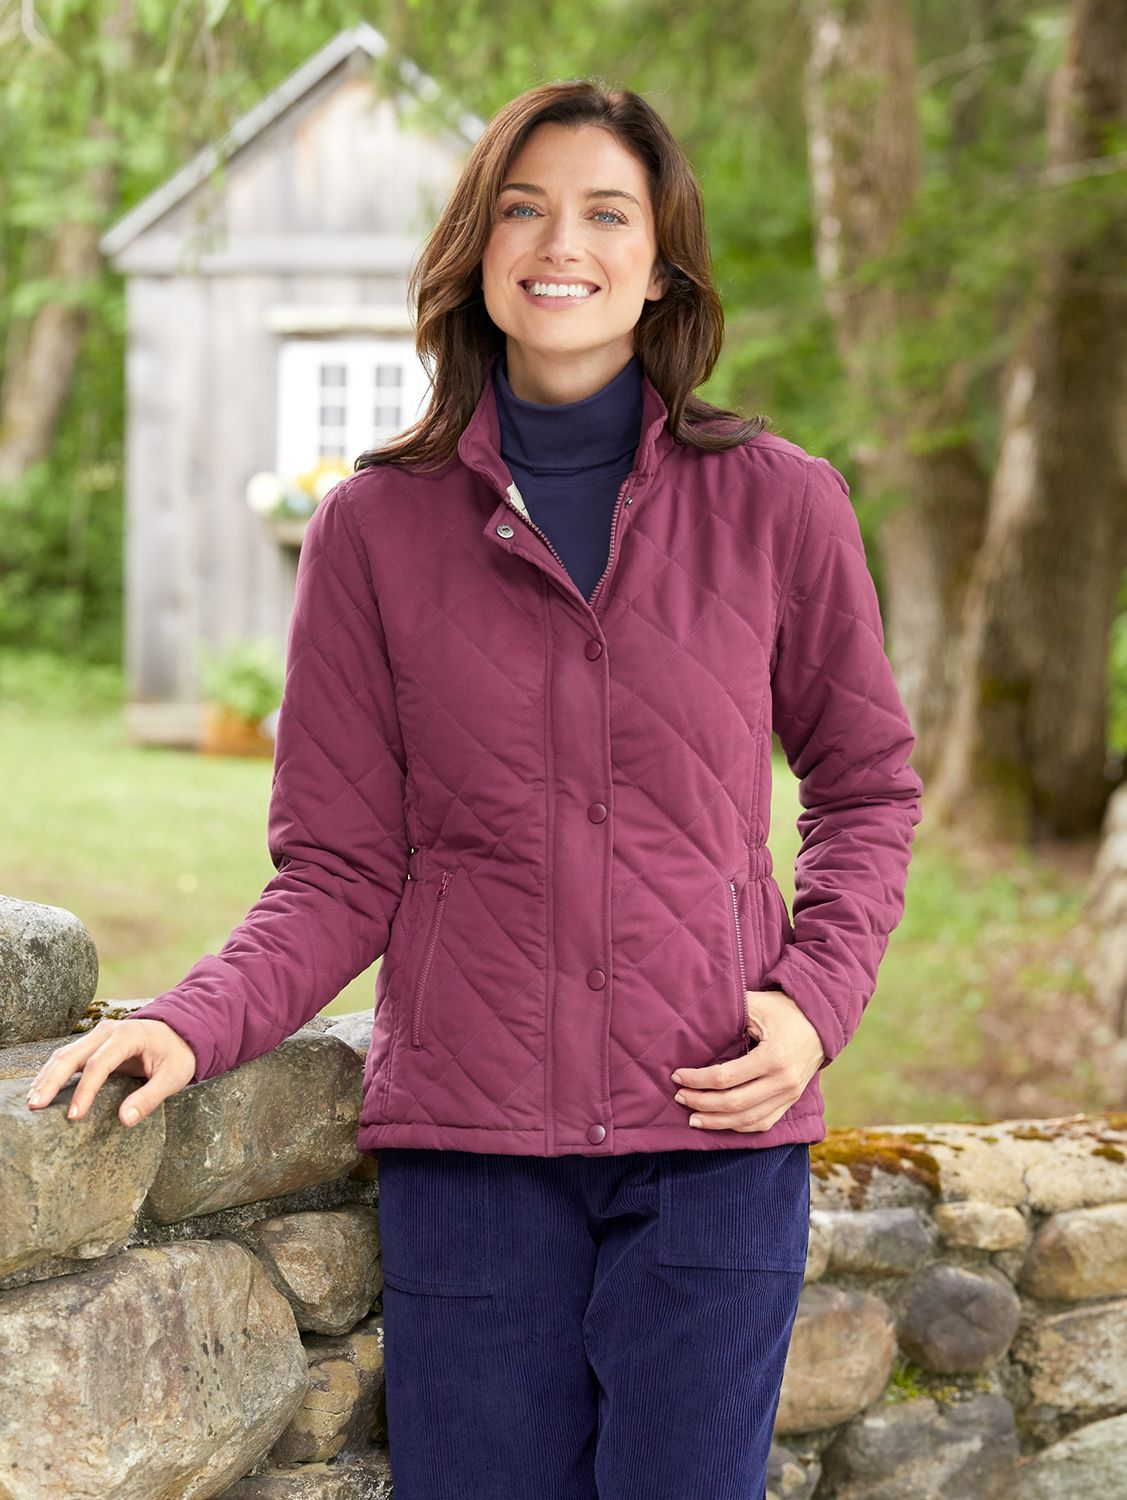 Our Quilted Outerwear Jacket Offers 3 Season Comfort And Timeless Style Jackets Quilted Outerwear Women [ 1500 x 1127 Pixel ]